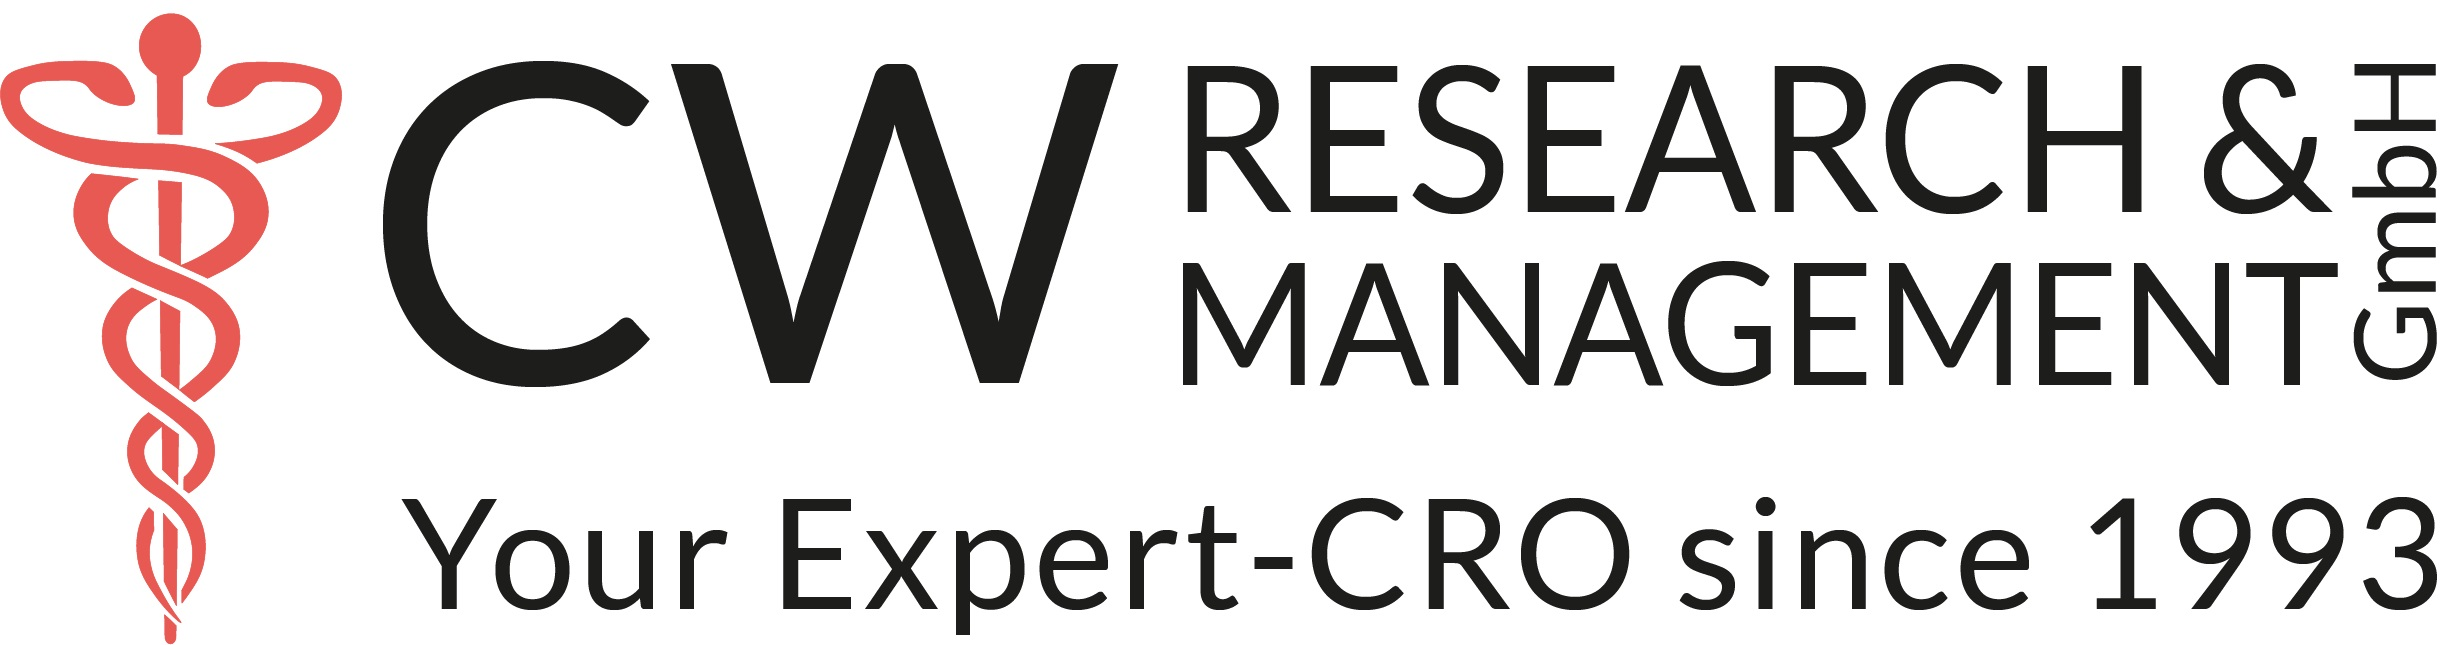 CW-Research & Management